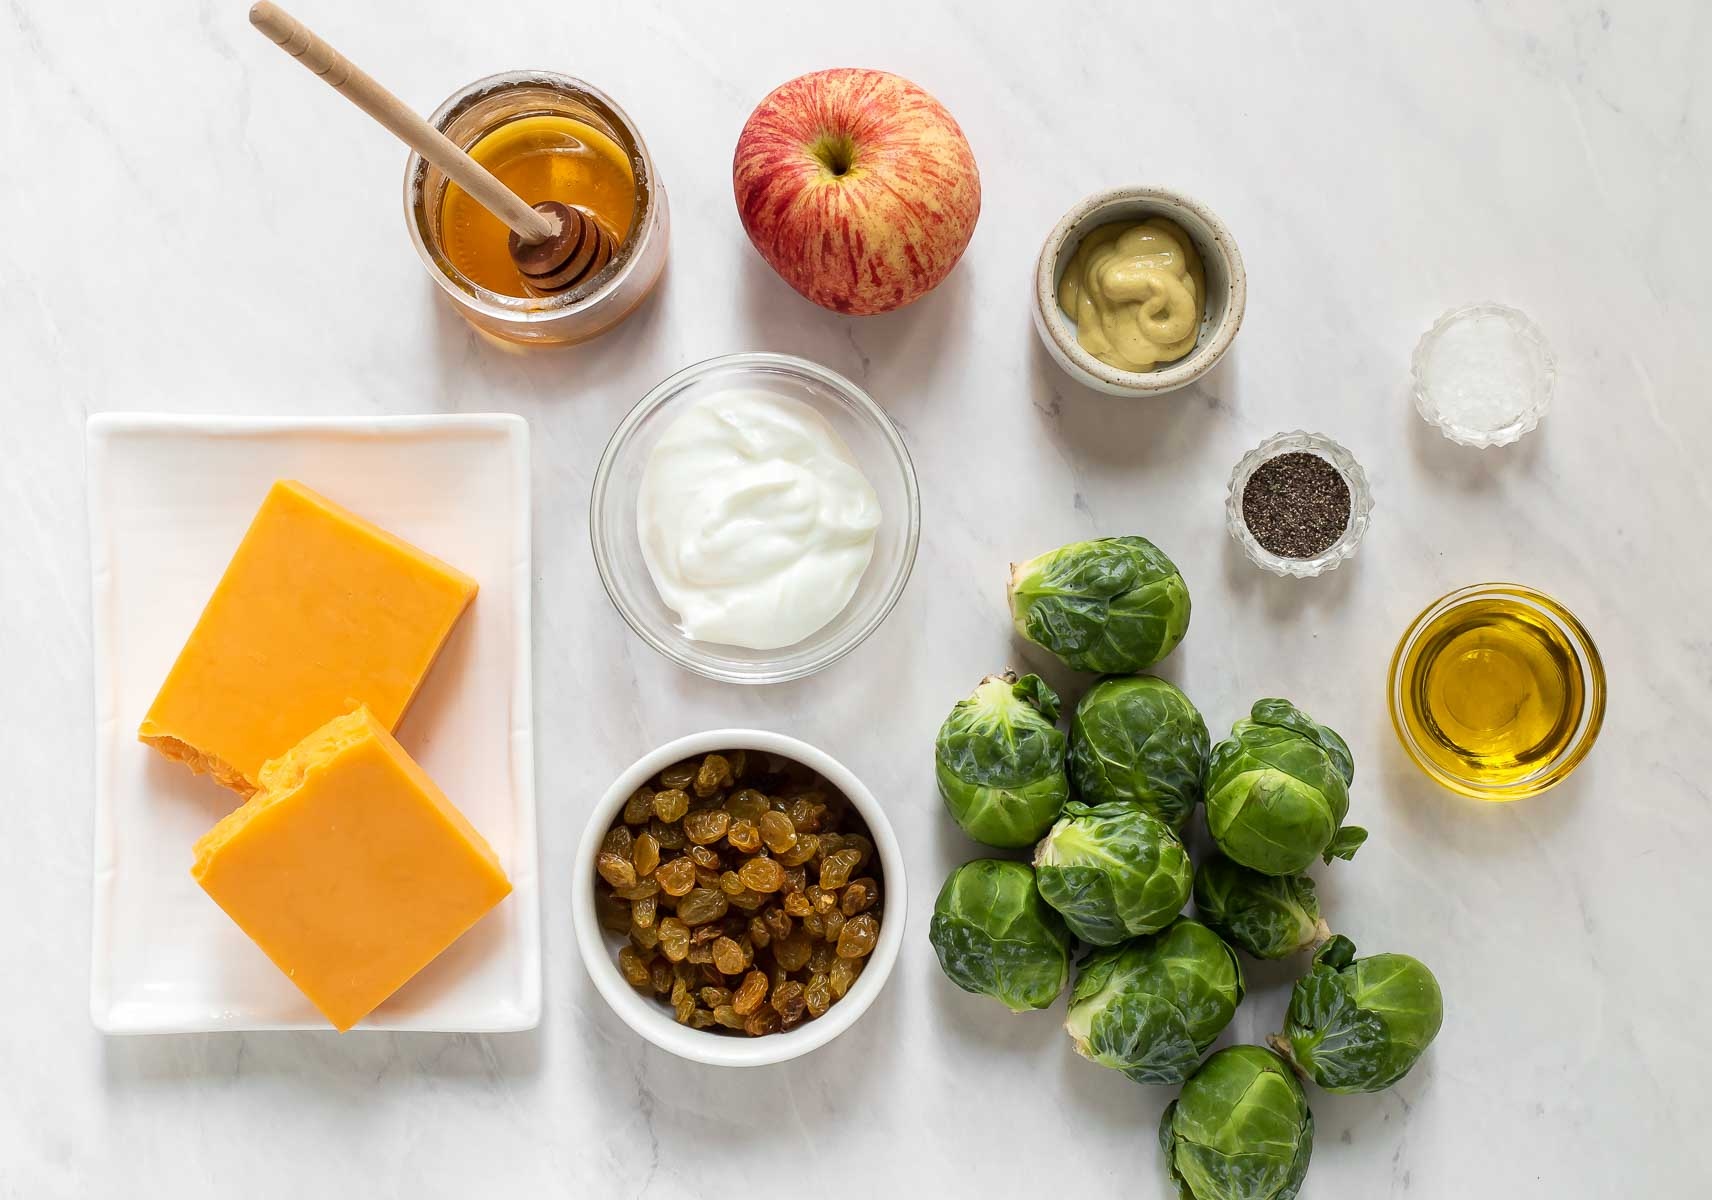 Ingredients for brussels sprout cole slaw on white table.